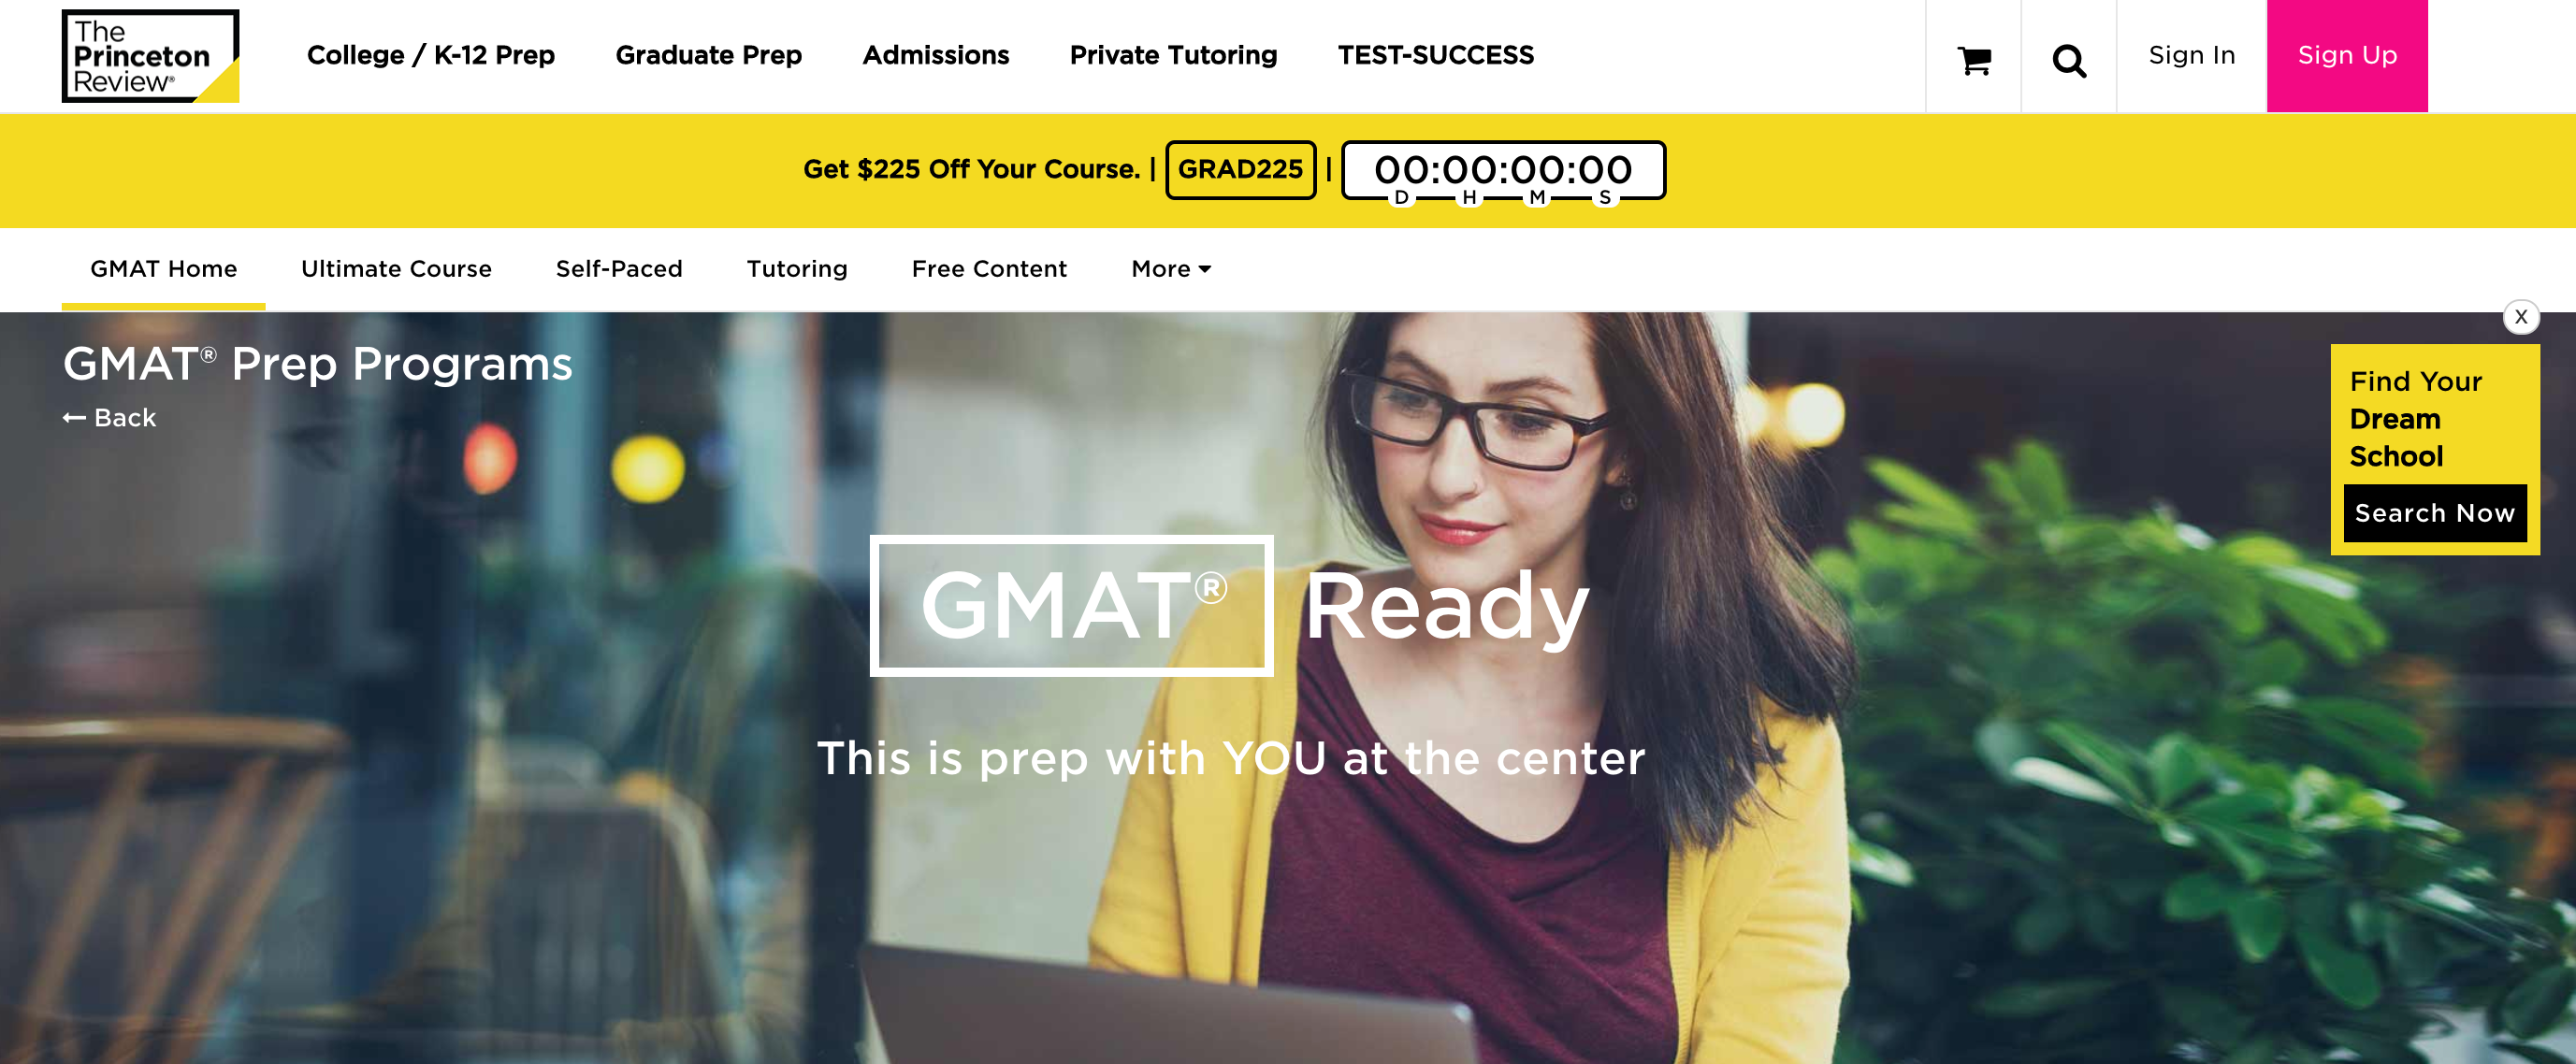 GMAT Test Prep- The Princeton Review